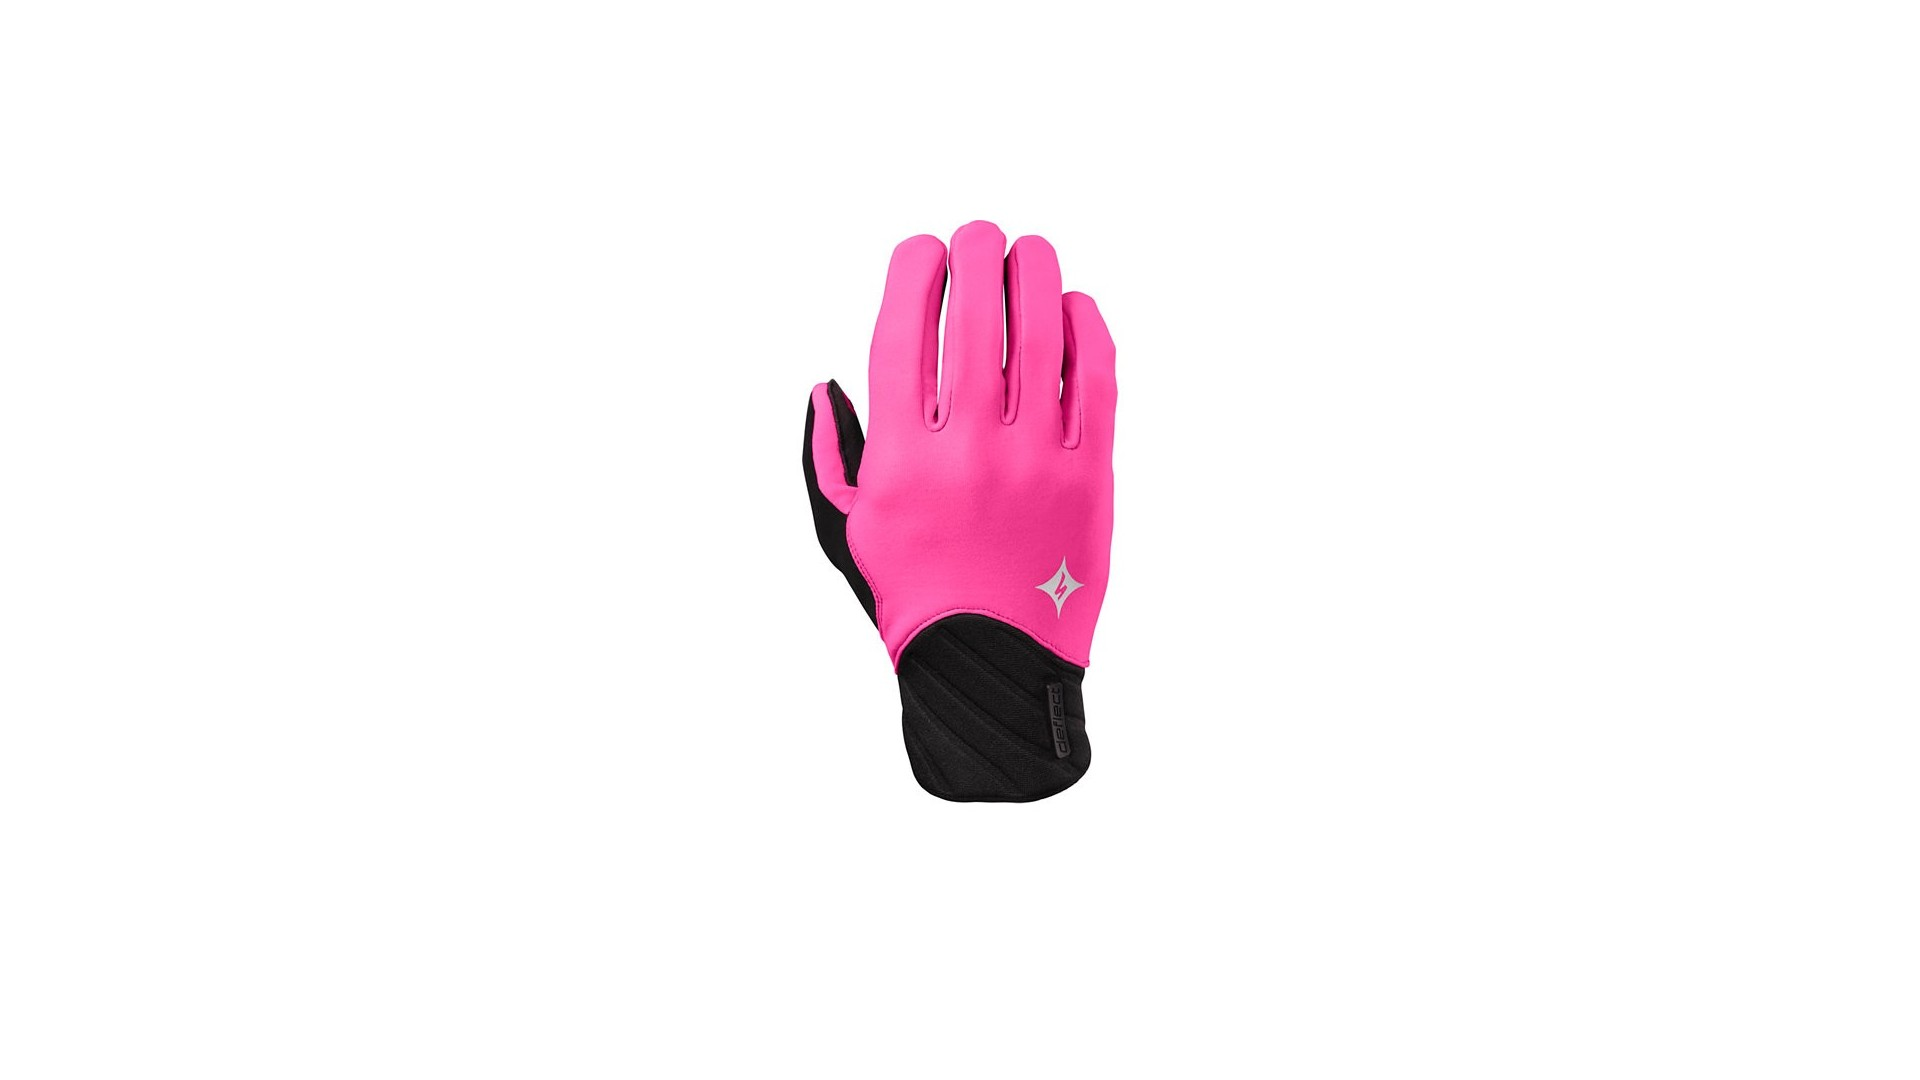 Deflect Guantes LF Specialized Mujer Body Geometry Rosa Neon 2 IBKBike.es